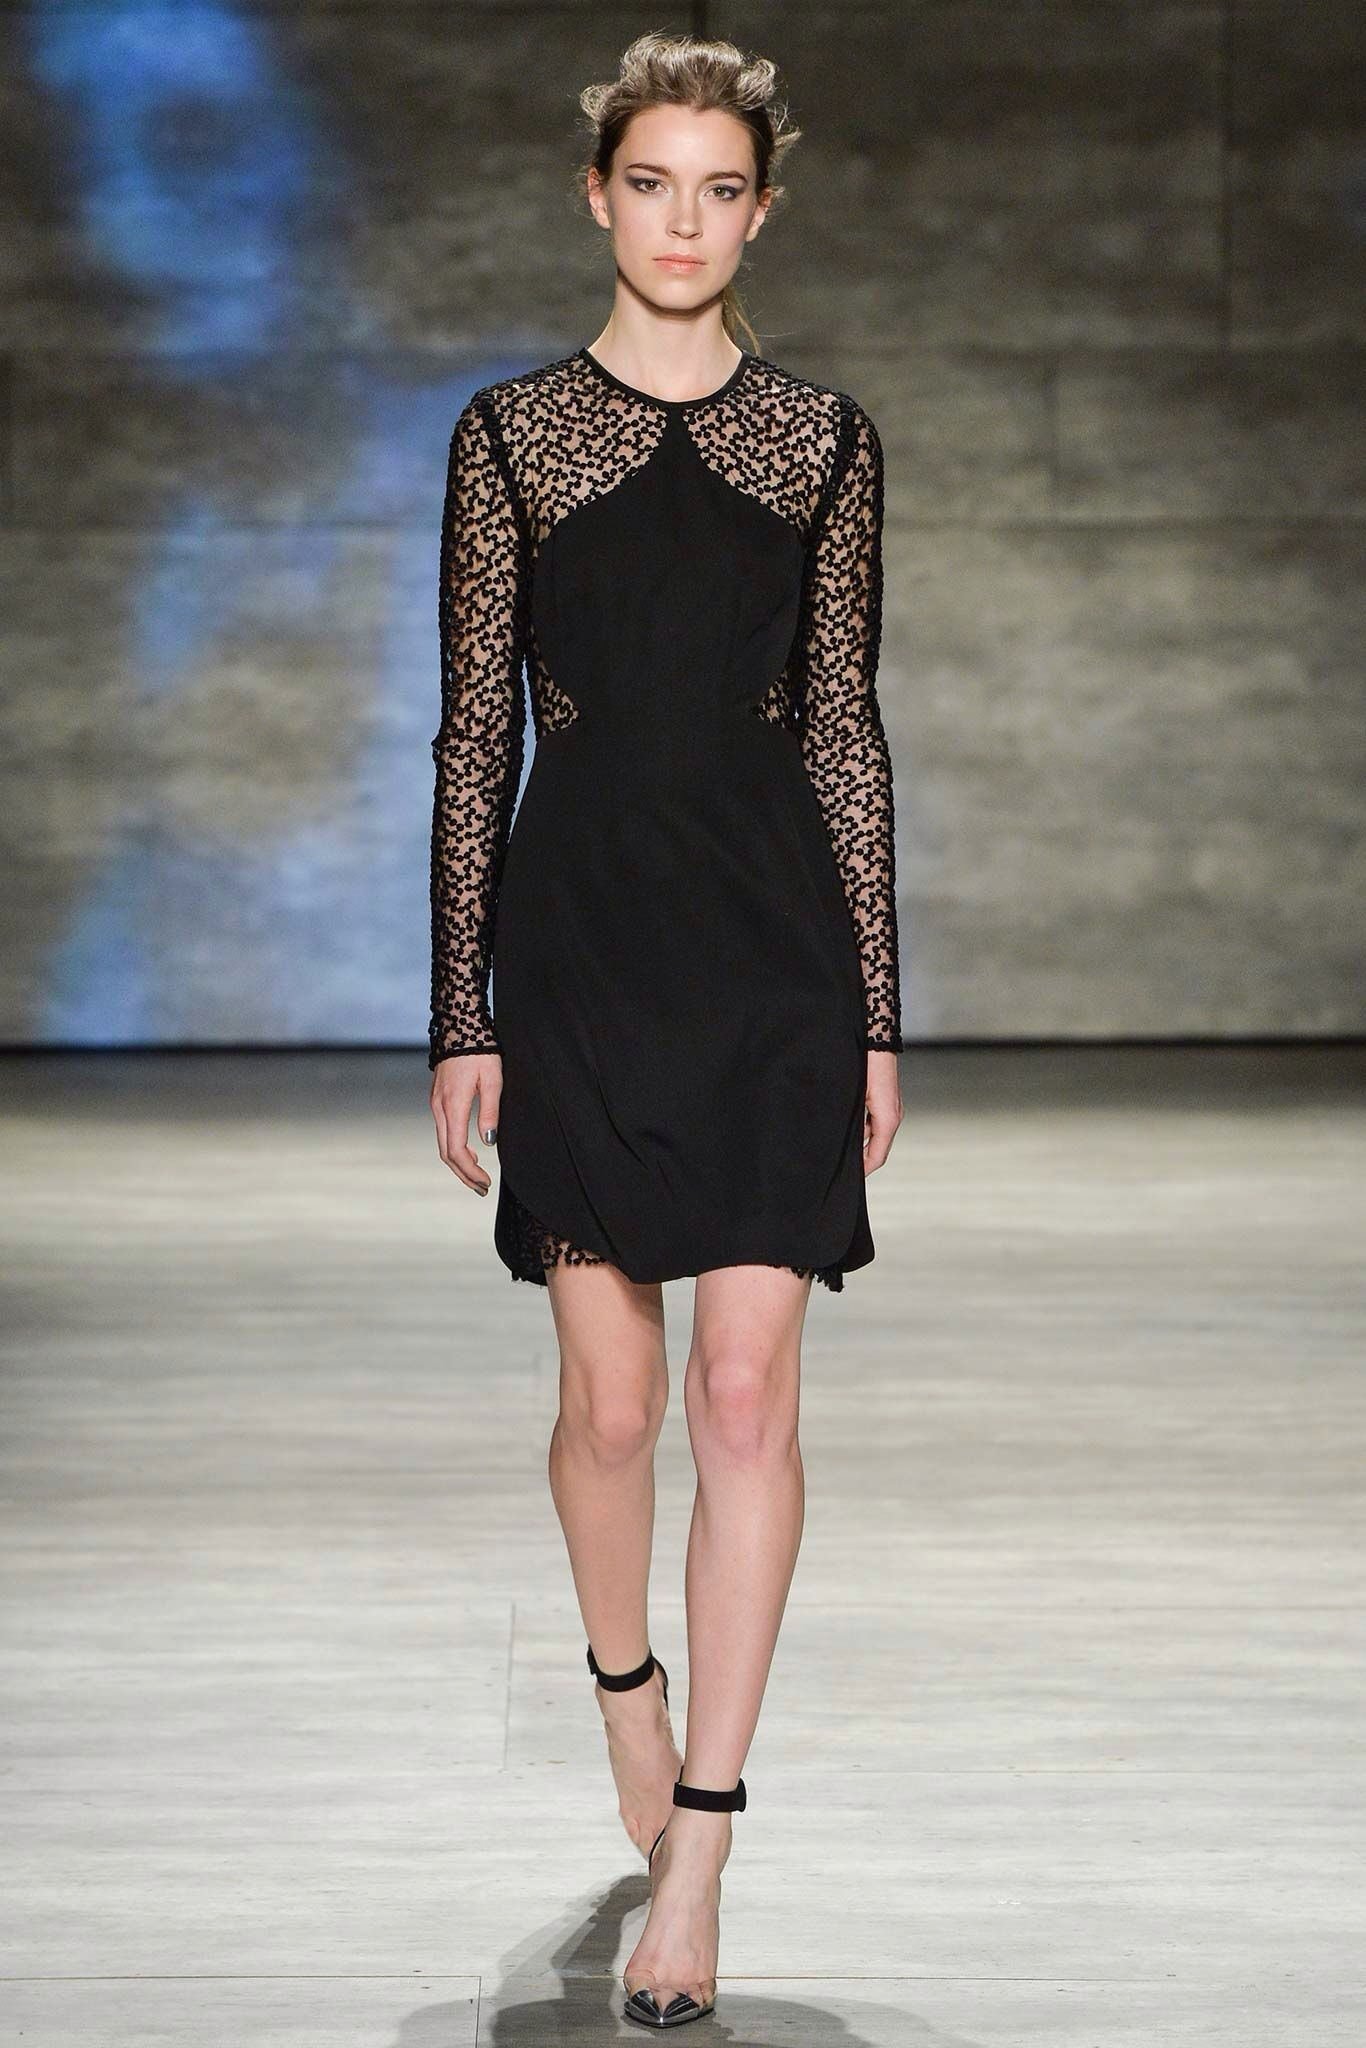 Model Eliza Hartmann for Lela Rose AW15 NYFW 2/17/15